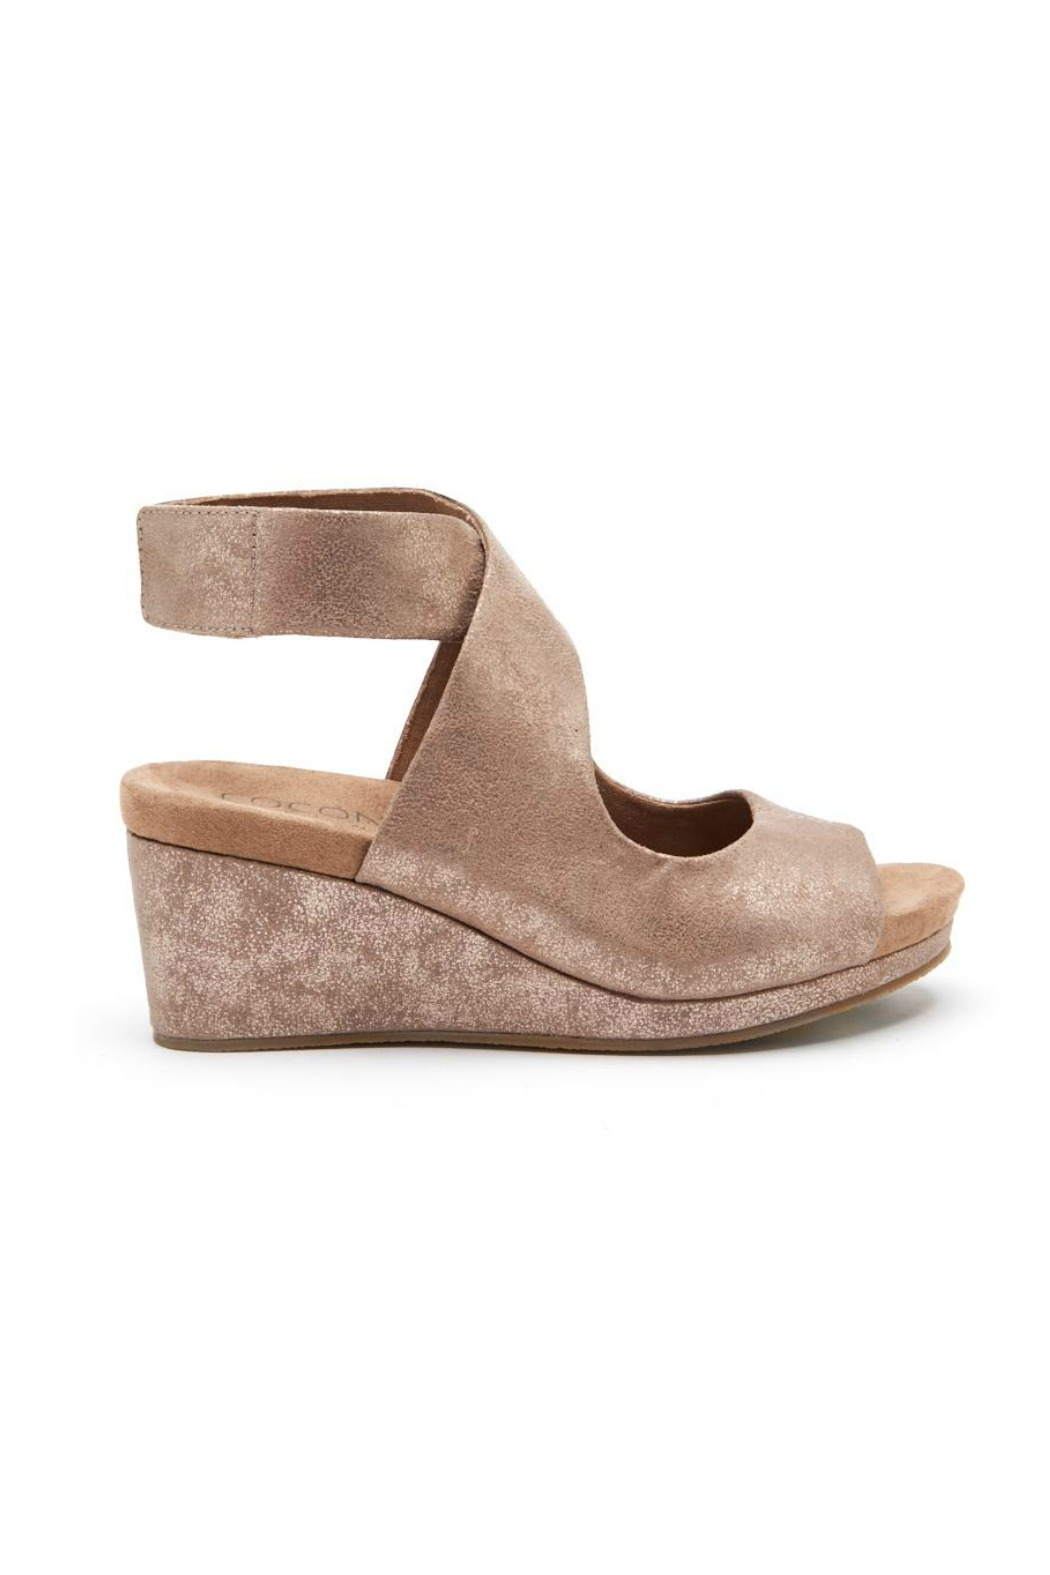 Coconuts by Matisse Coryn Metallic Wedge - Front Full Image